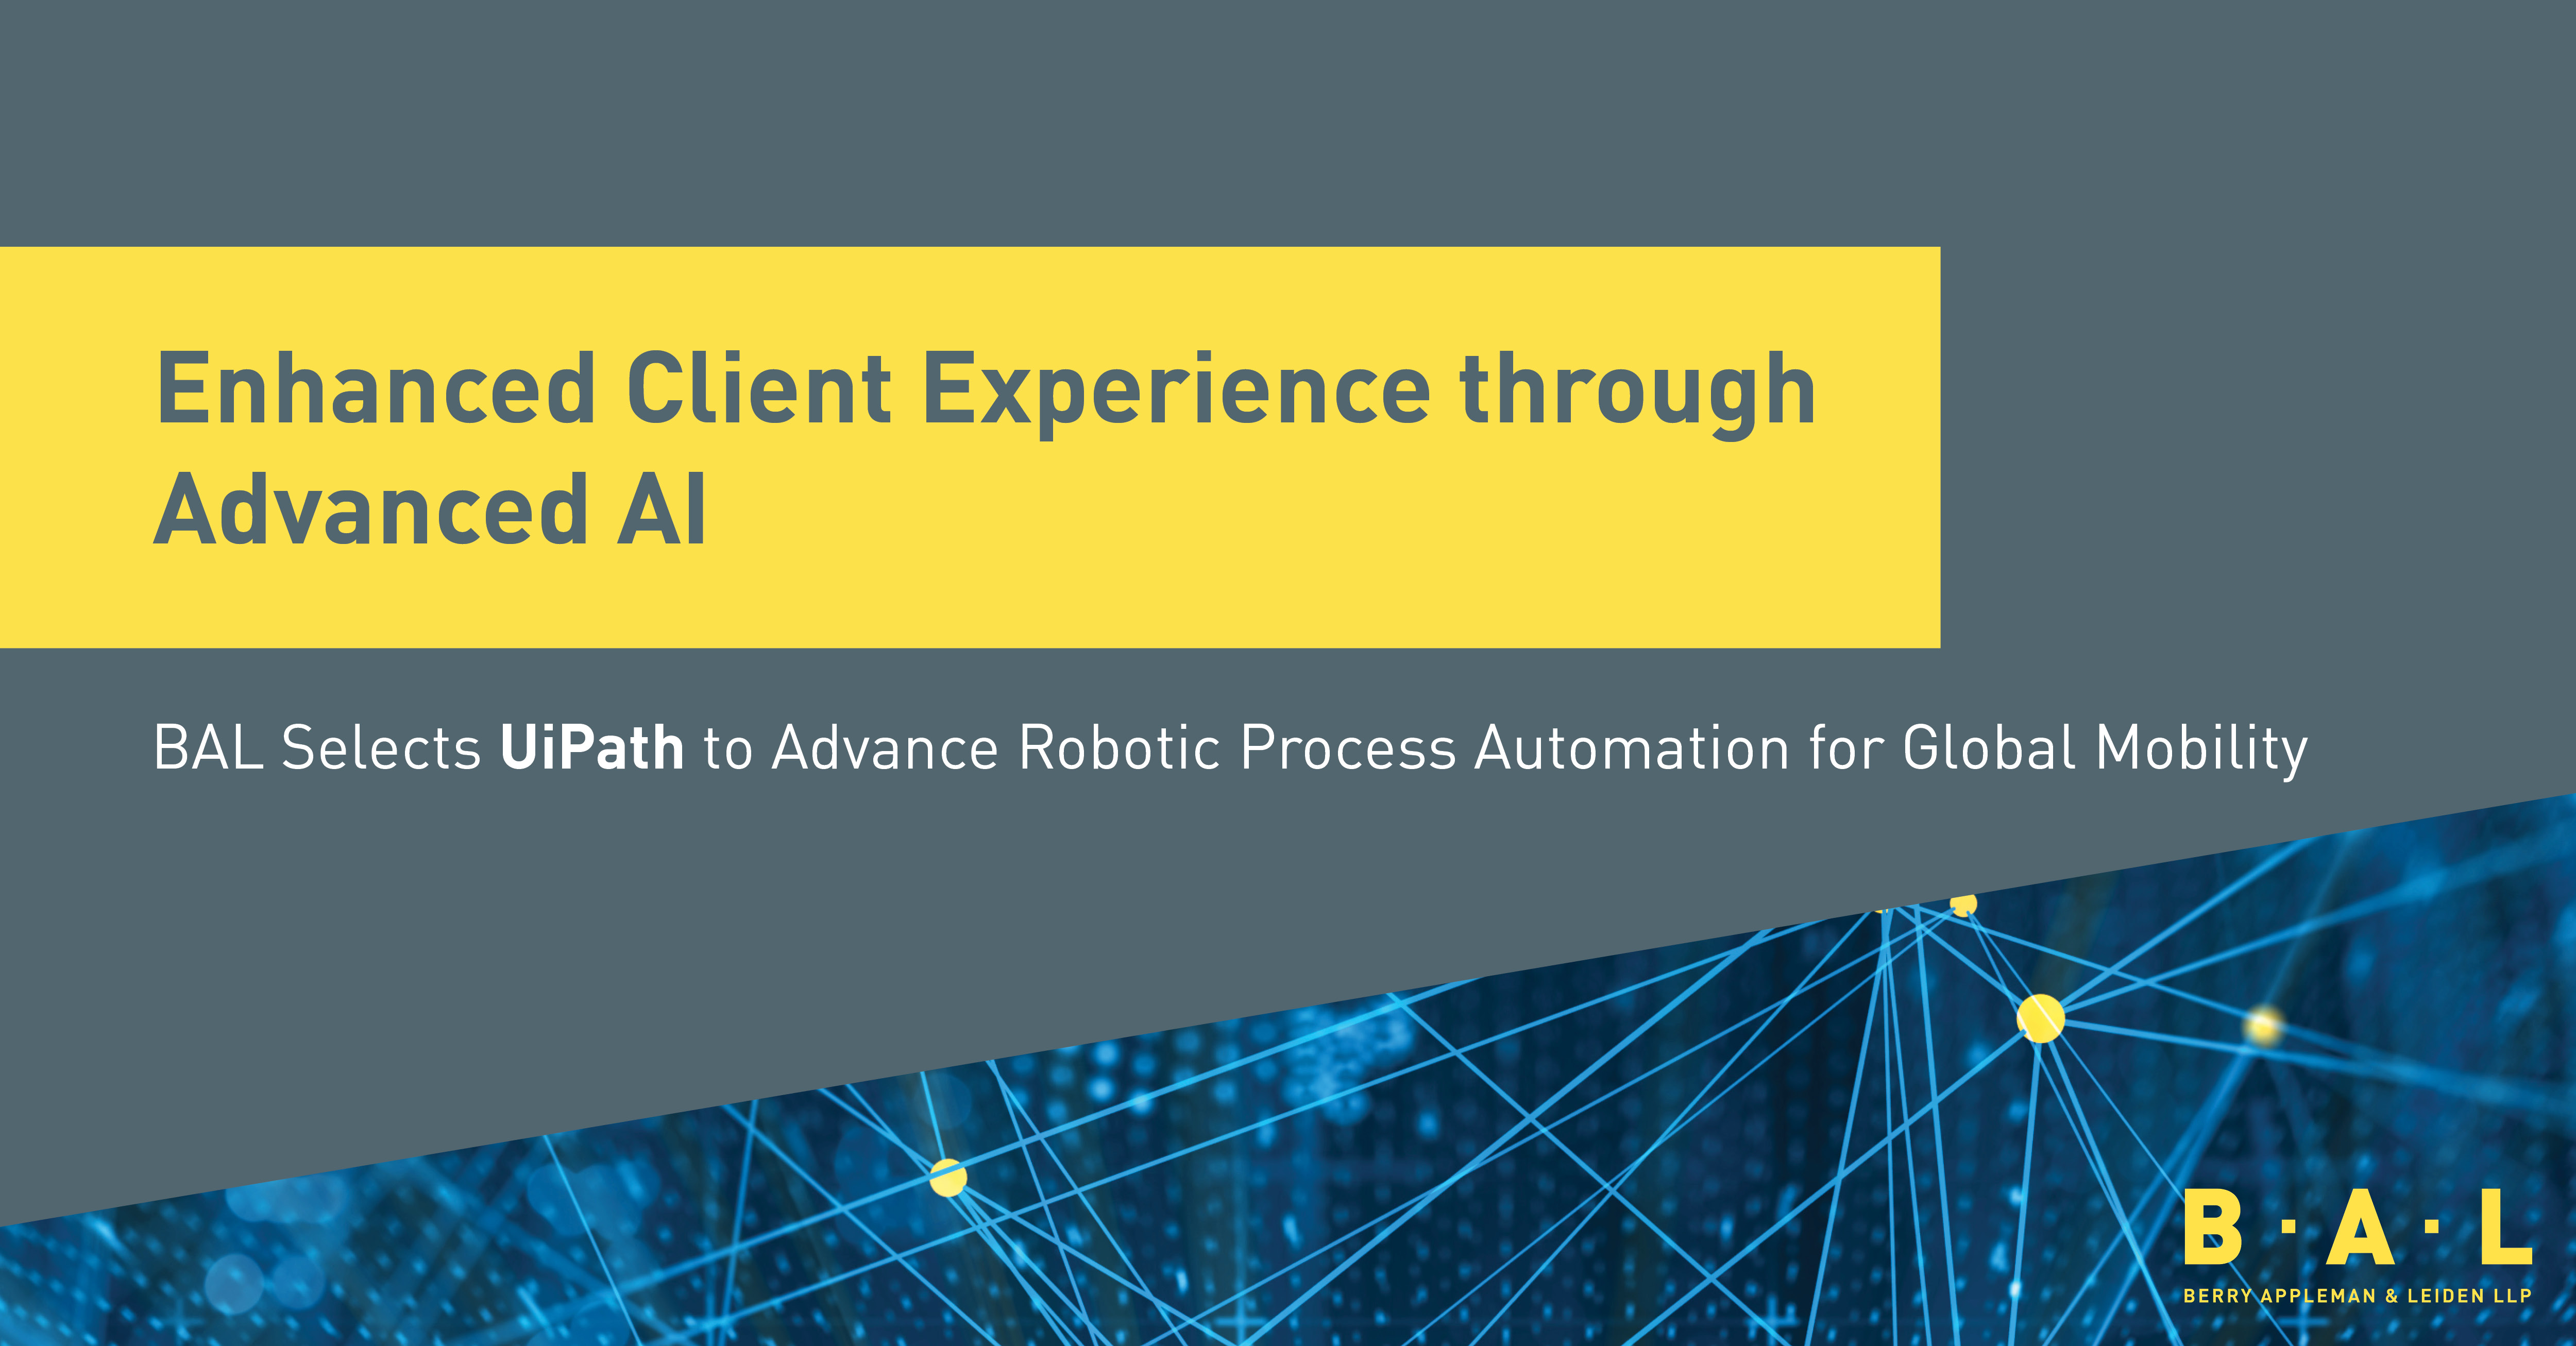 BAL Selects UiPath to Advance Robotic Process Automation for